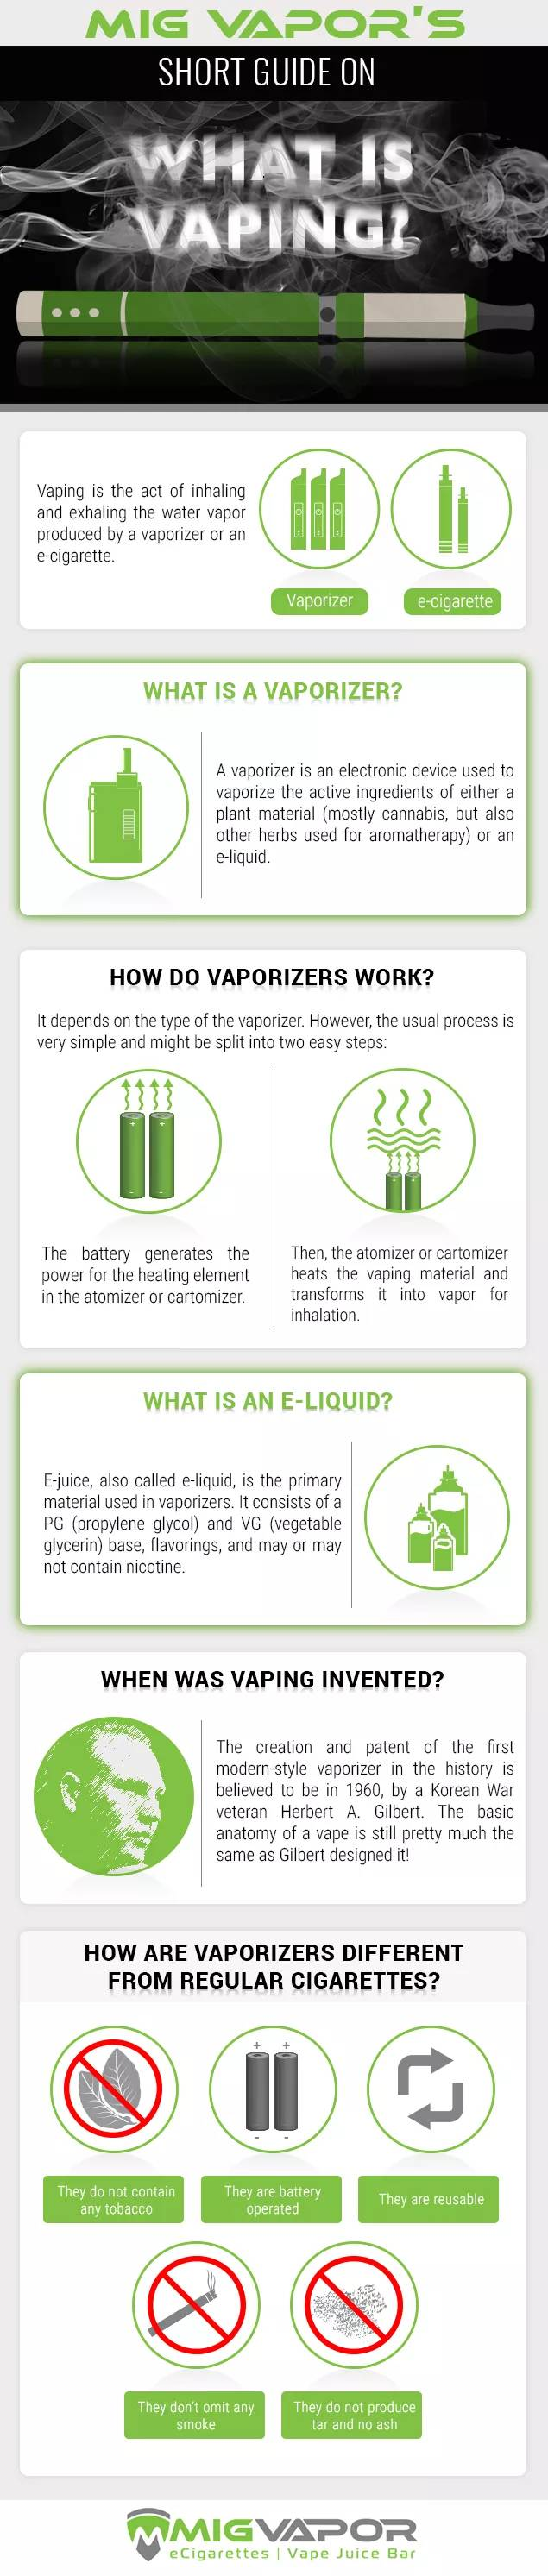 Mig Vapor's Guide on What is Vaping?